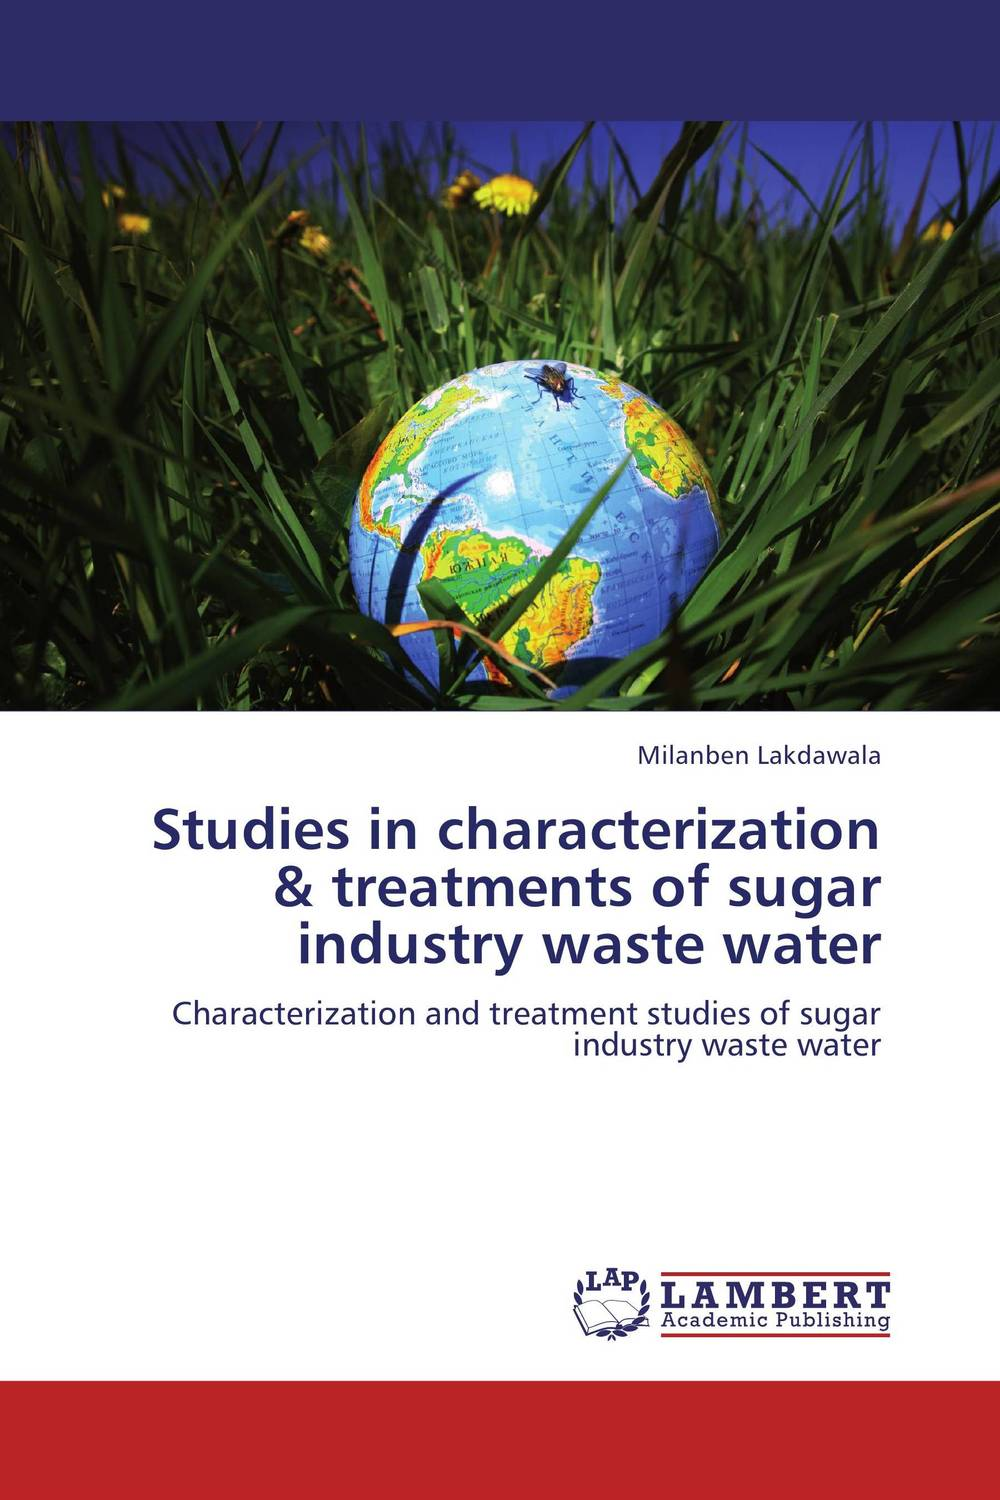 Studies in characterization & treatments of sugar industry waste water thermo operated water valves can be used in food processing equipments biomass boilers and hydraulic systems